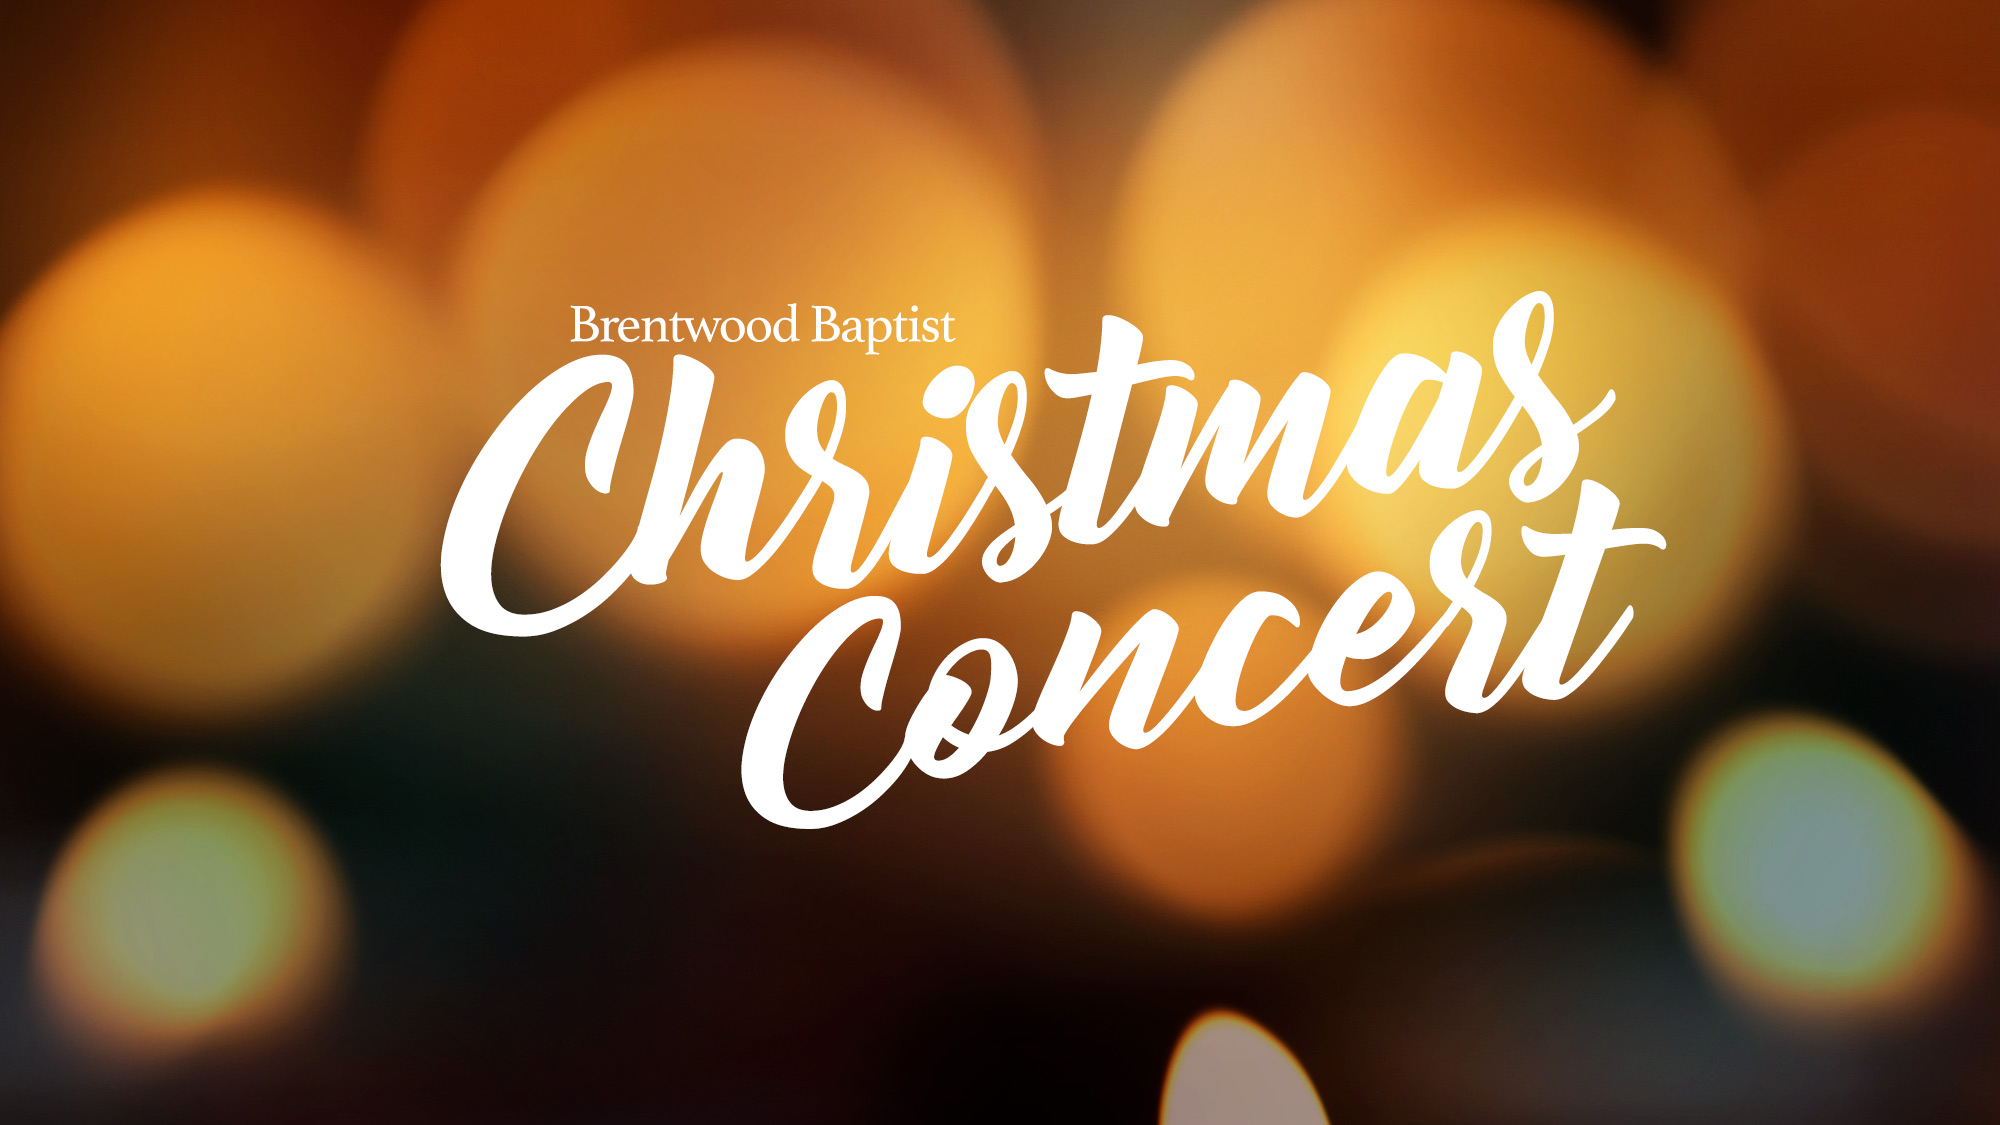 Brentwood Baptist Church Christmas Concert